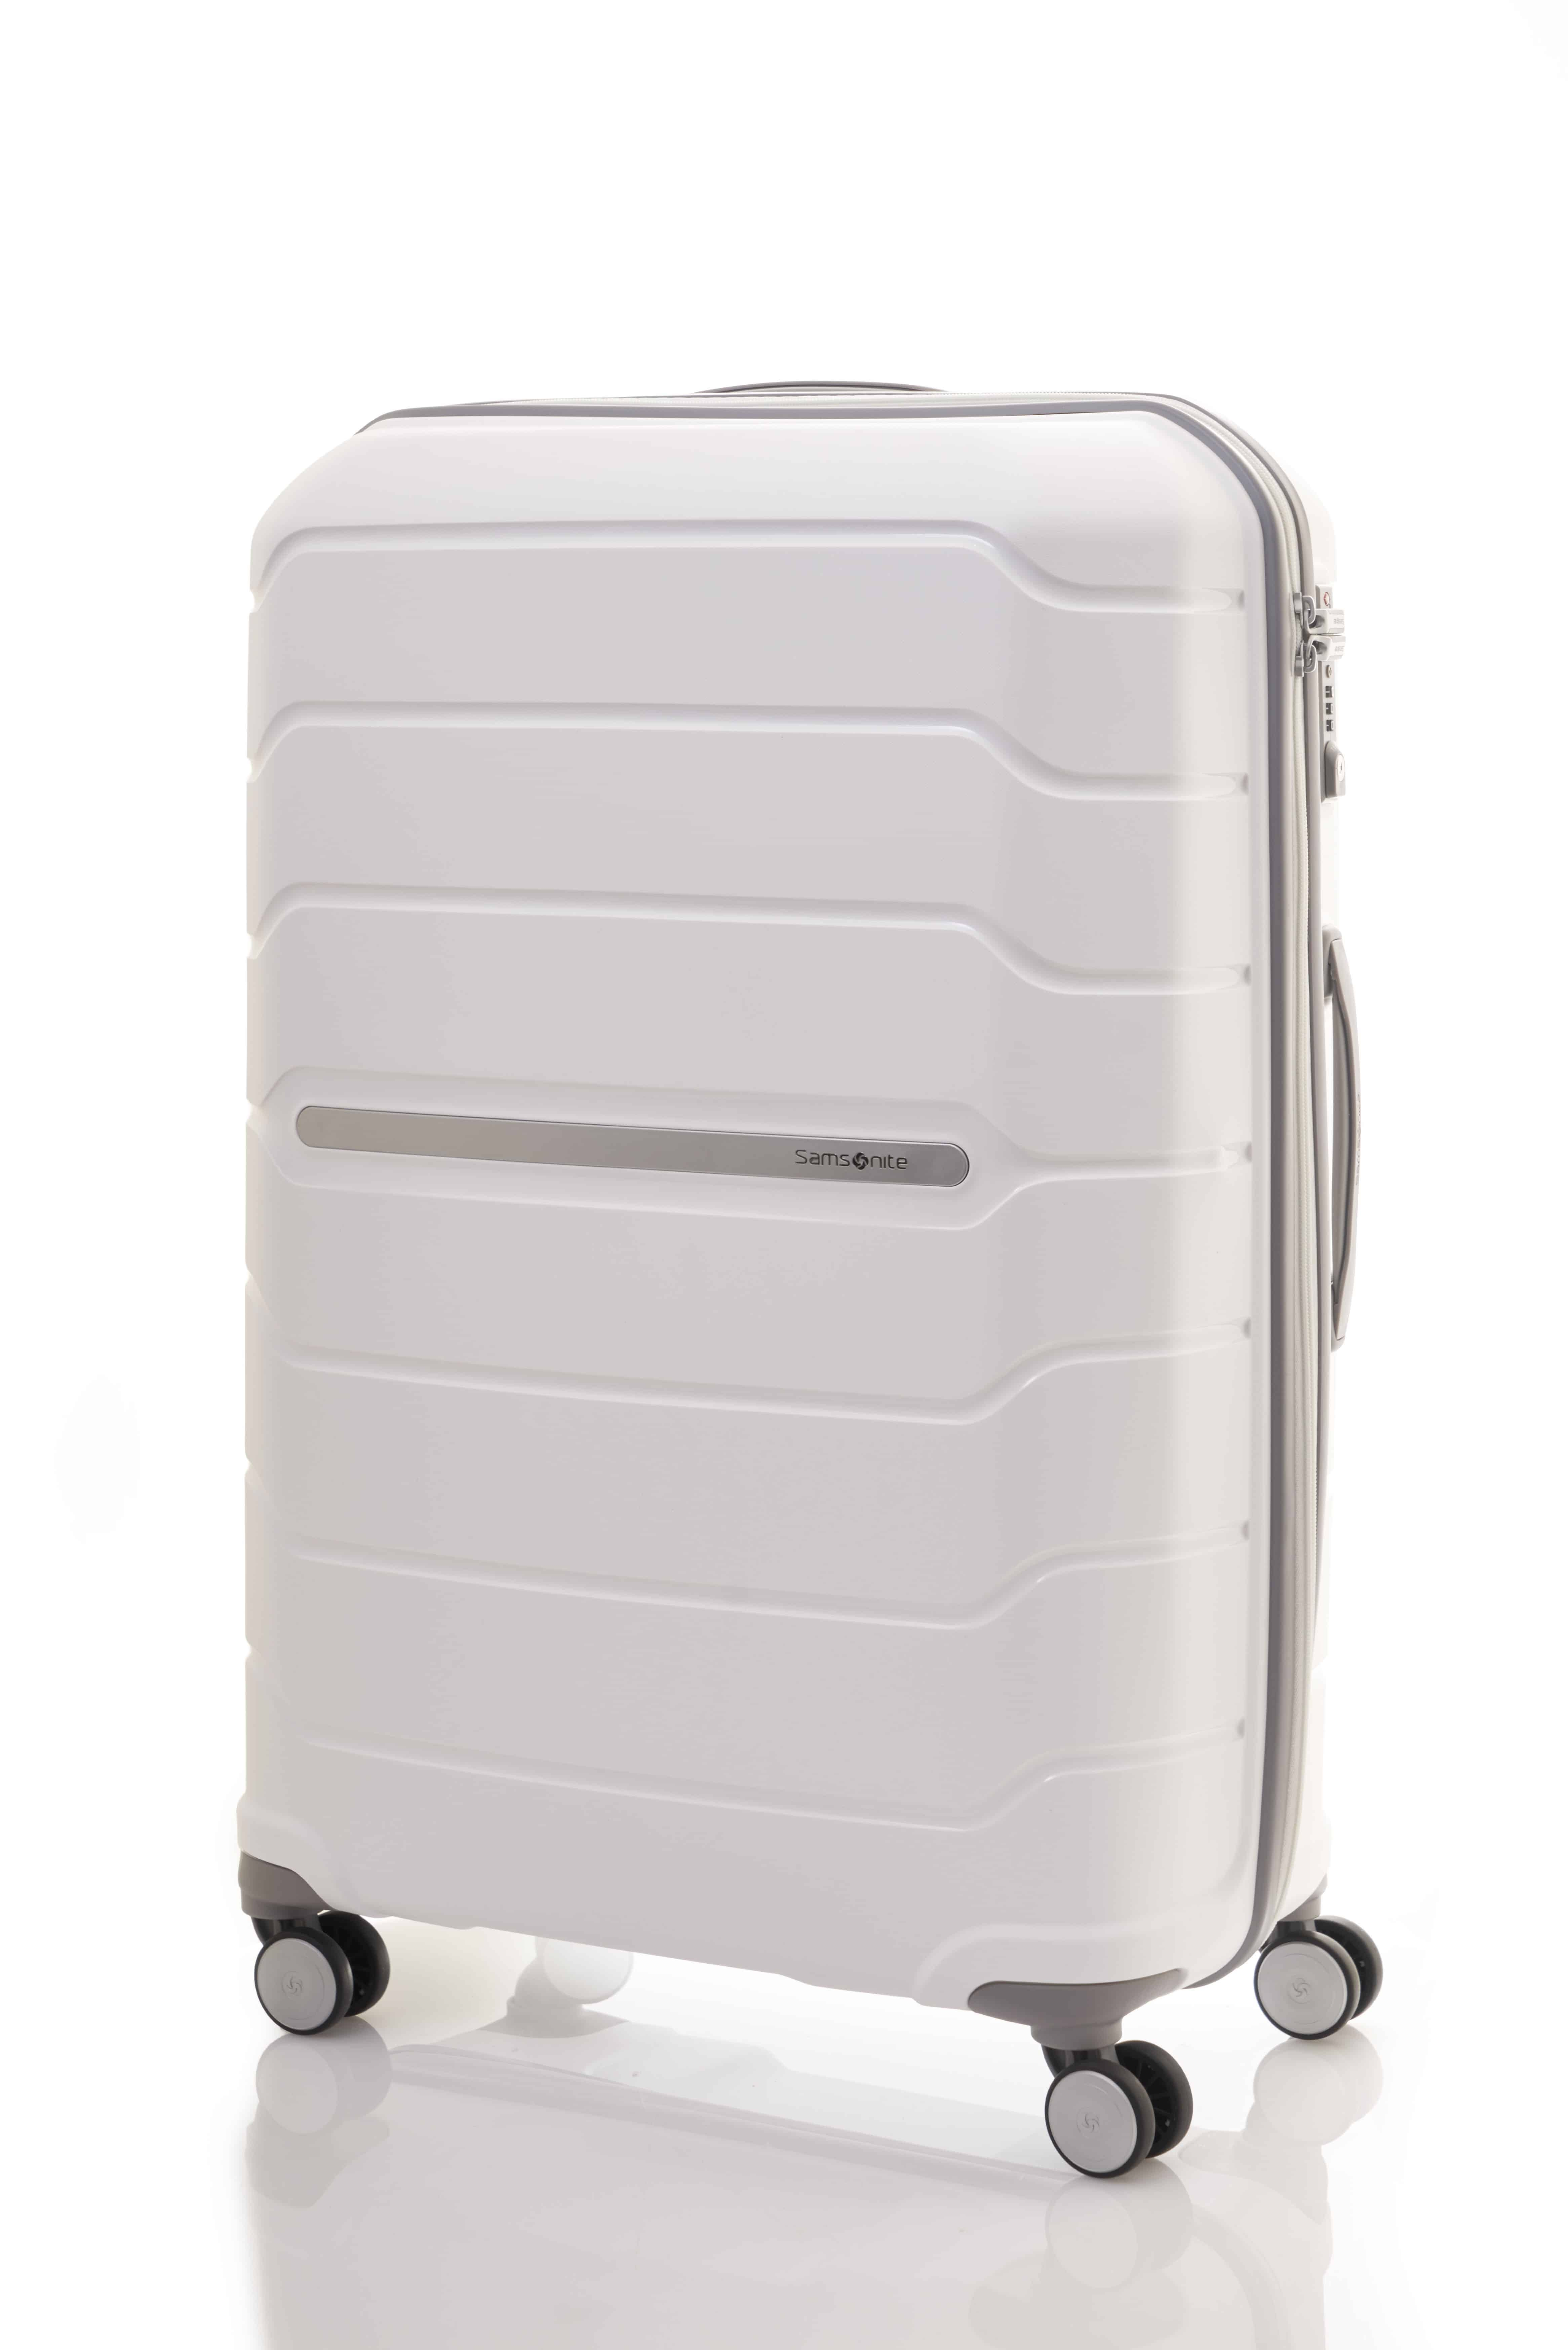 Samsonite Octolite white front